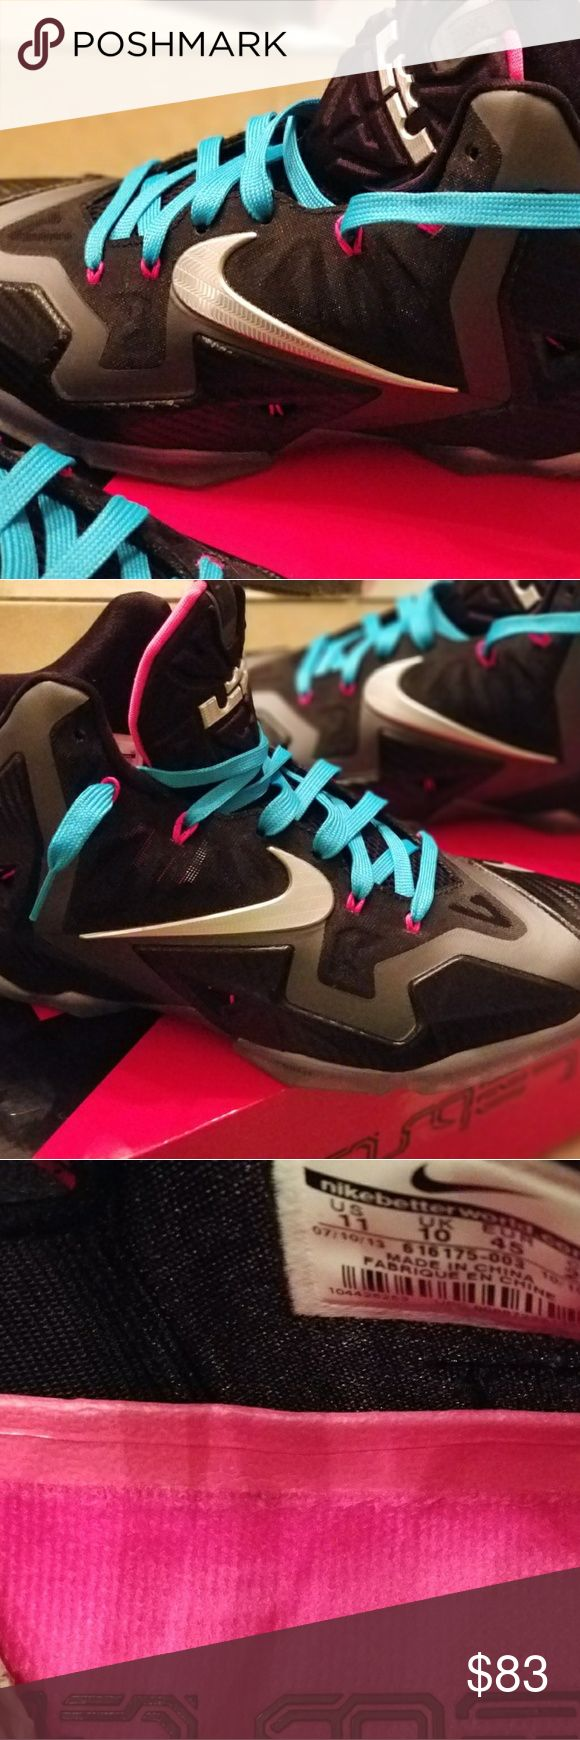 Nike LeBron 11 The Nike LeBron 11 miami nights- the signature shoe worn by LeBron during his 2nd title run with the Miami Heat. They are available one click away. Featuring the black, silver, and signature tone of Miami lights pink. The shoes have only been worn a couple times and kept as a keepsake. They come in the original Nike box. No scratches, scuffs, or gimmicks. Black Nike laces will also be included with order. Nike Shoes Sneakers